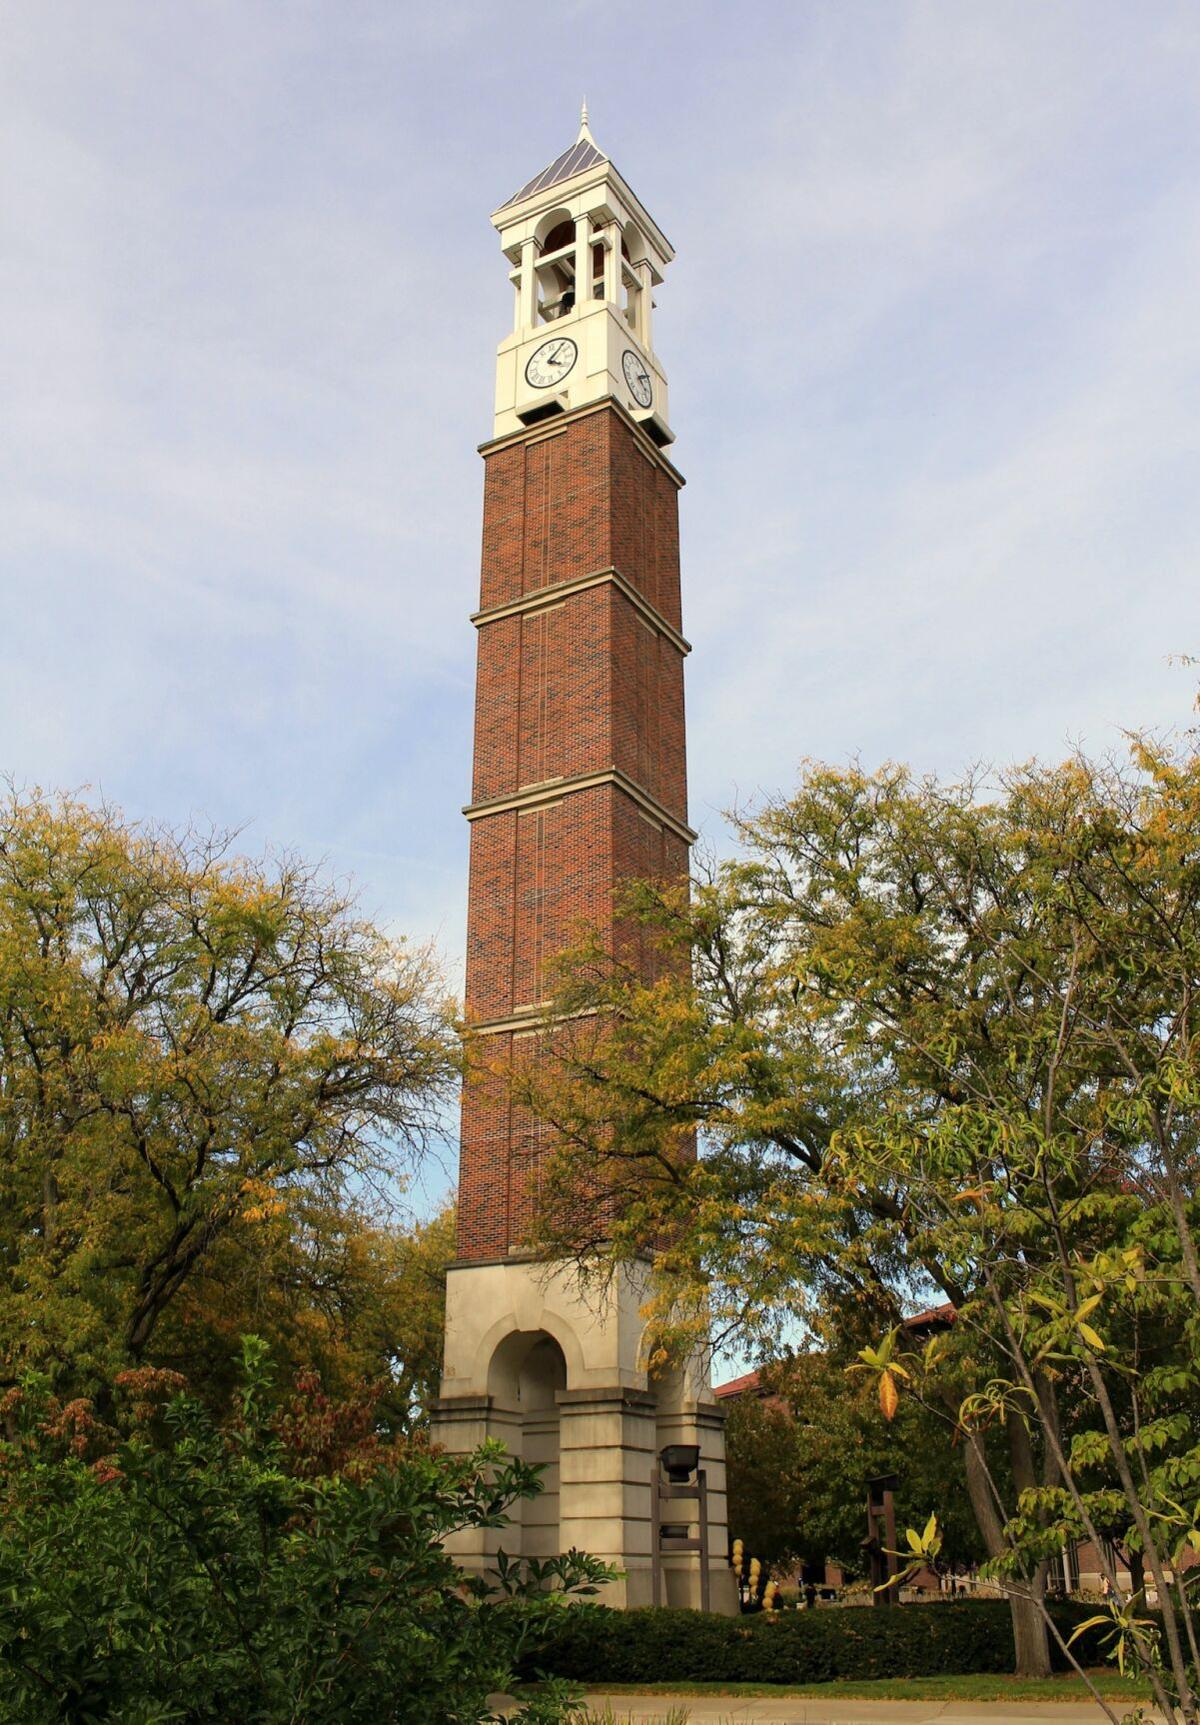 10/14/20 Bell Tower 25th Birthday